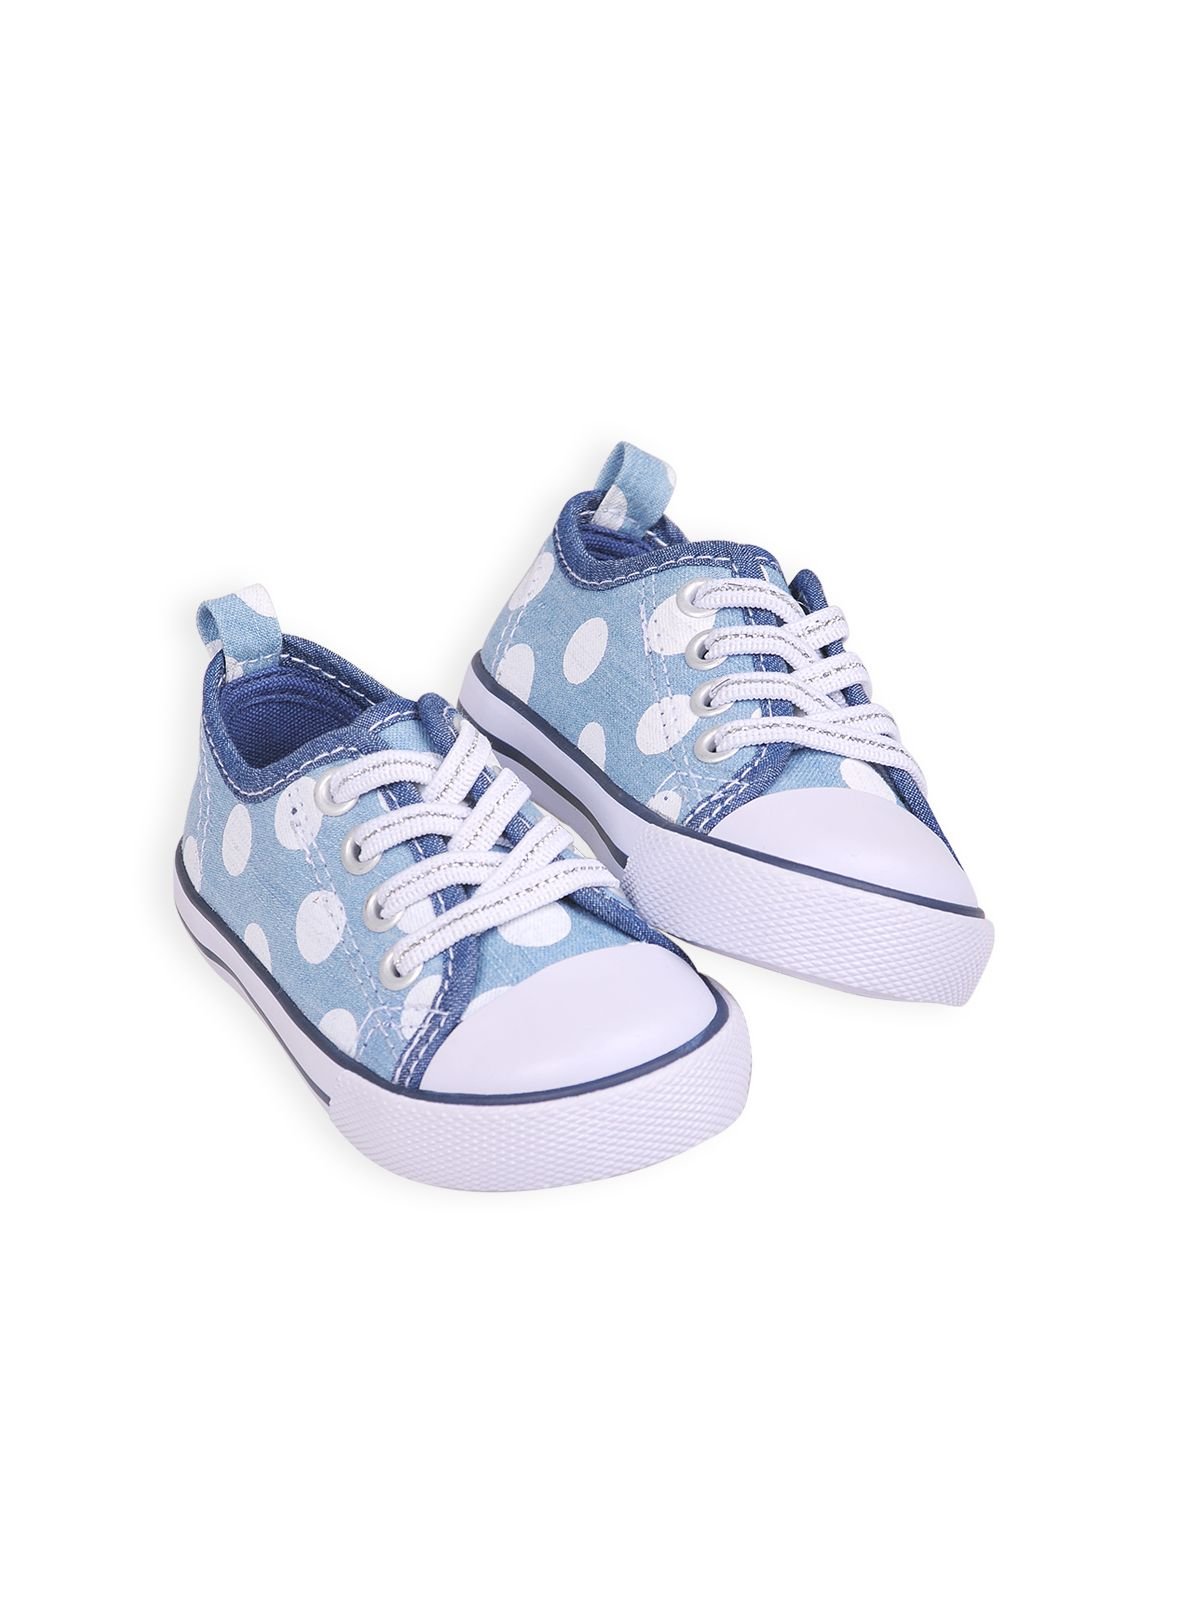 Girls big spot denim trainers